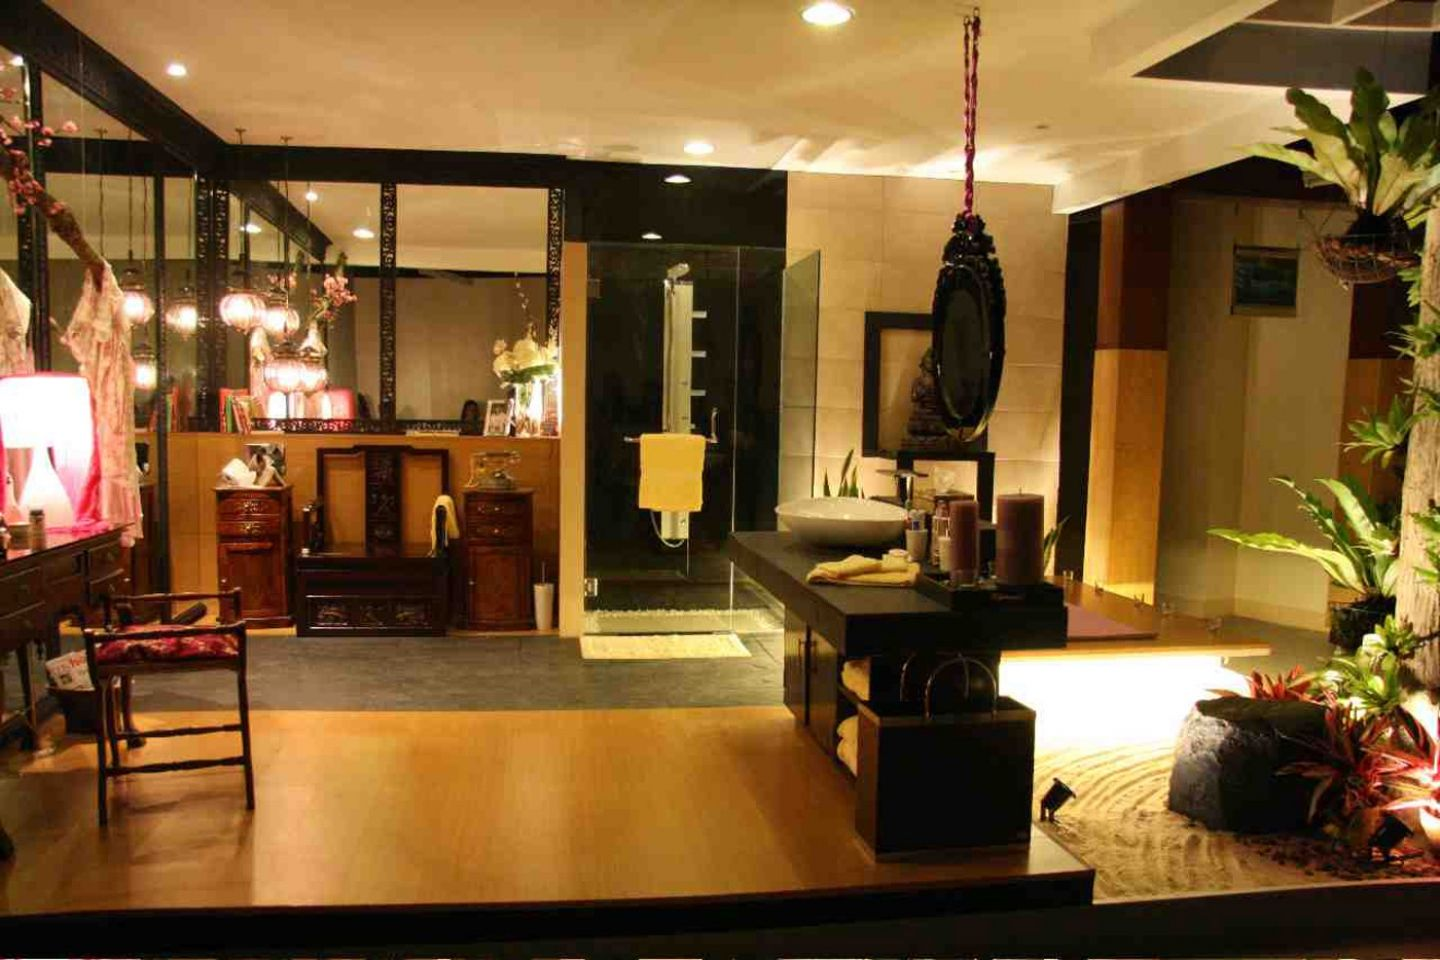 architecture excellent for asian contemporary interior design and decorating ideas modern oriental asian contemporary interior design - Asian Contemporary House Designs